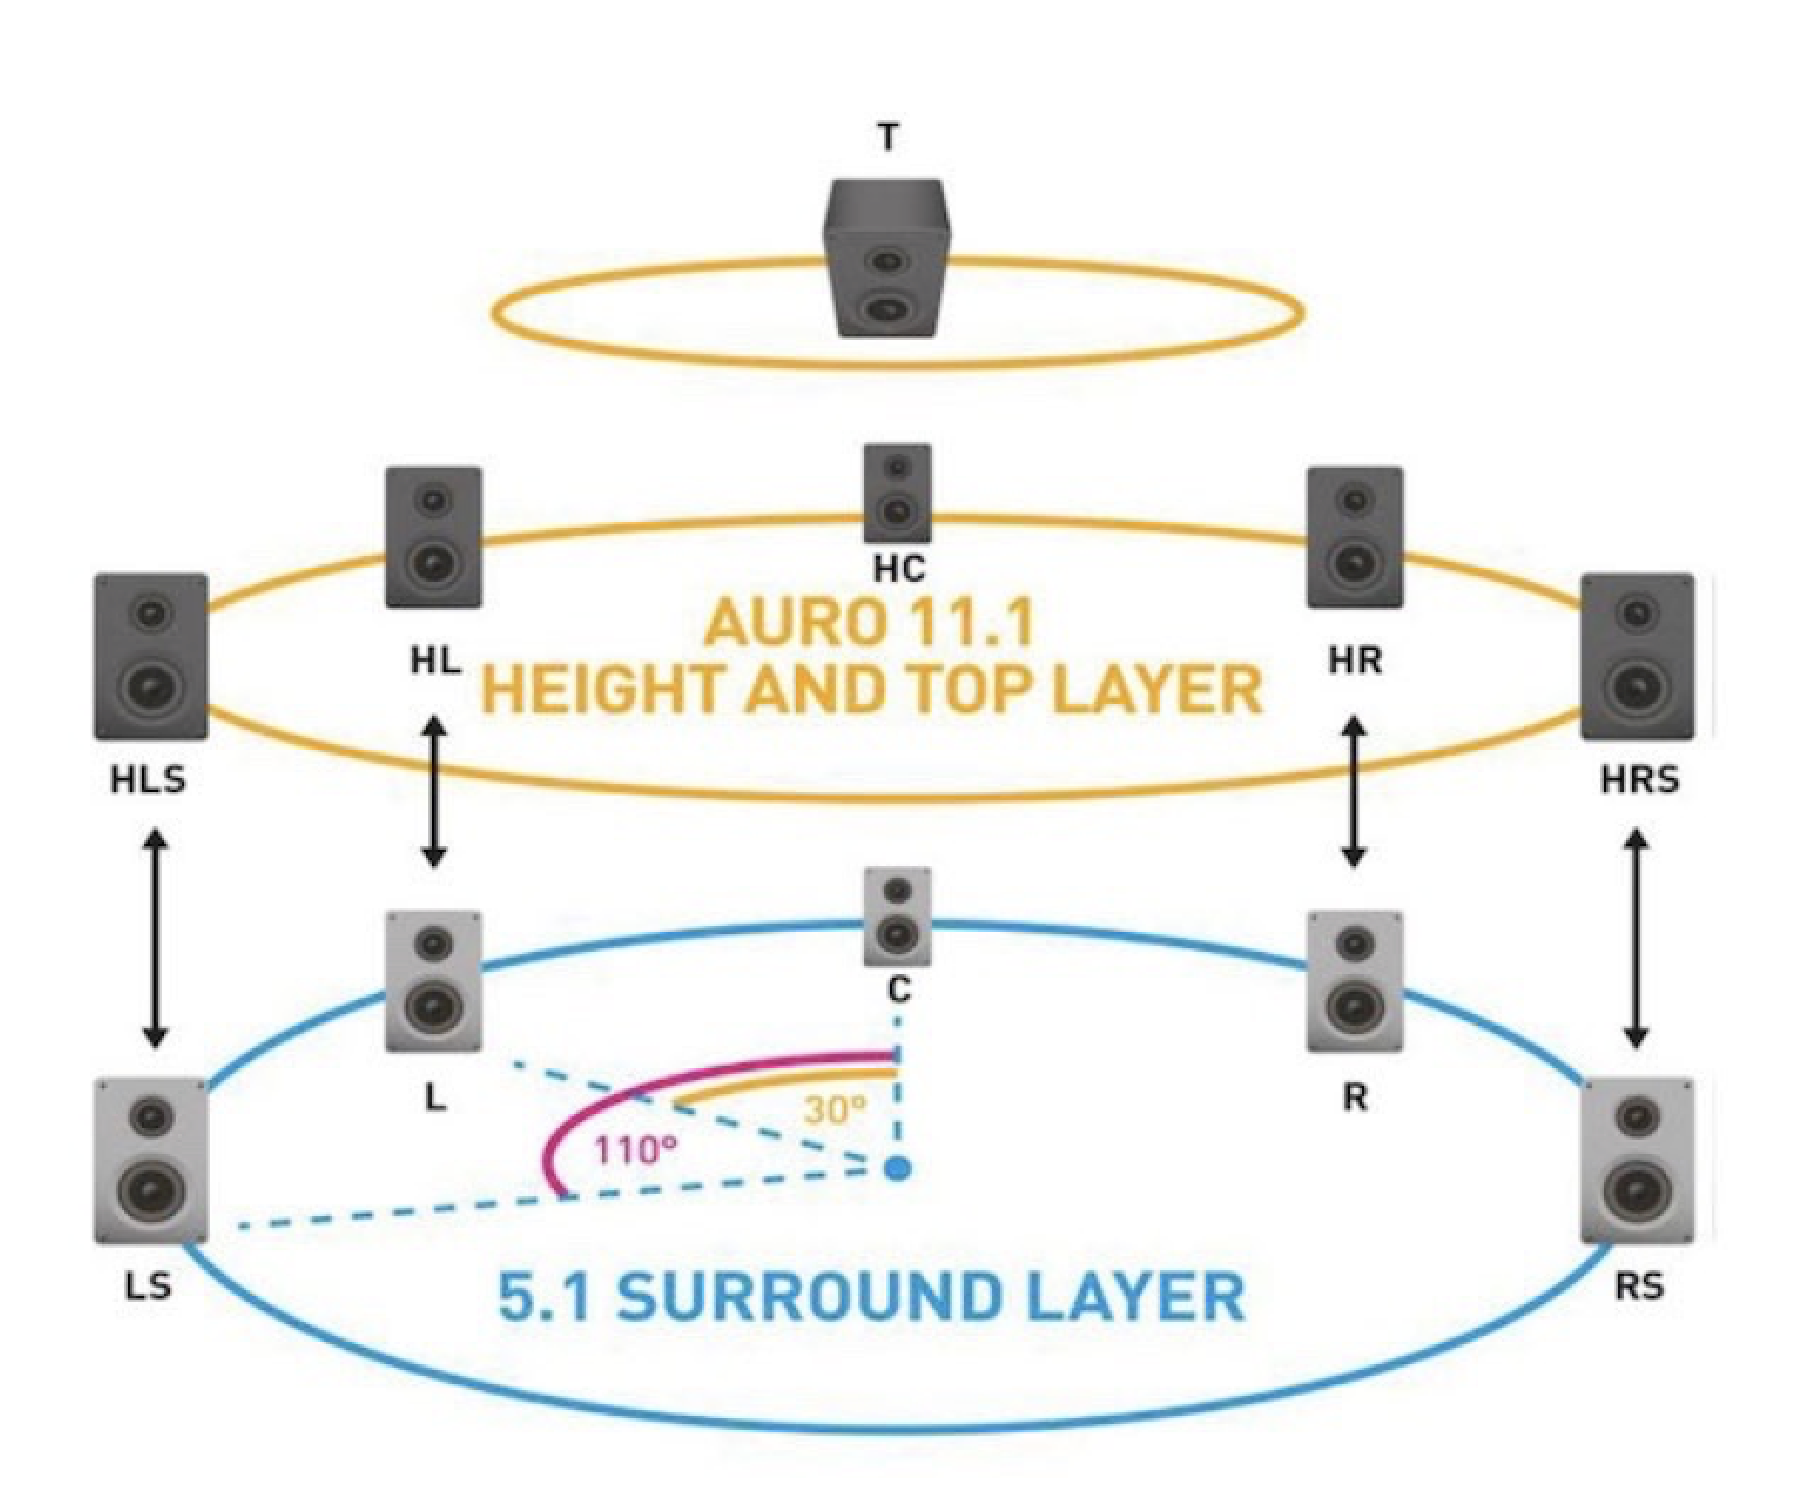 The basic layout of Auro 3D surround sound for home cinema